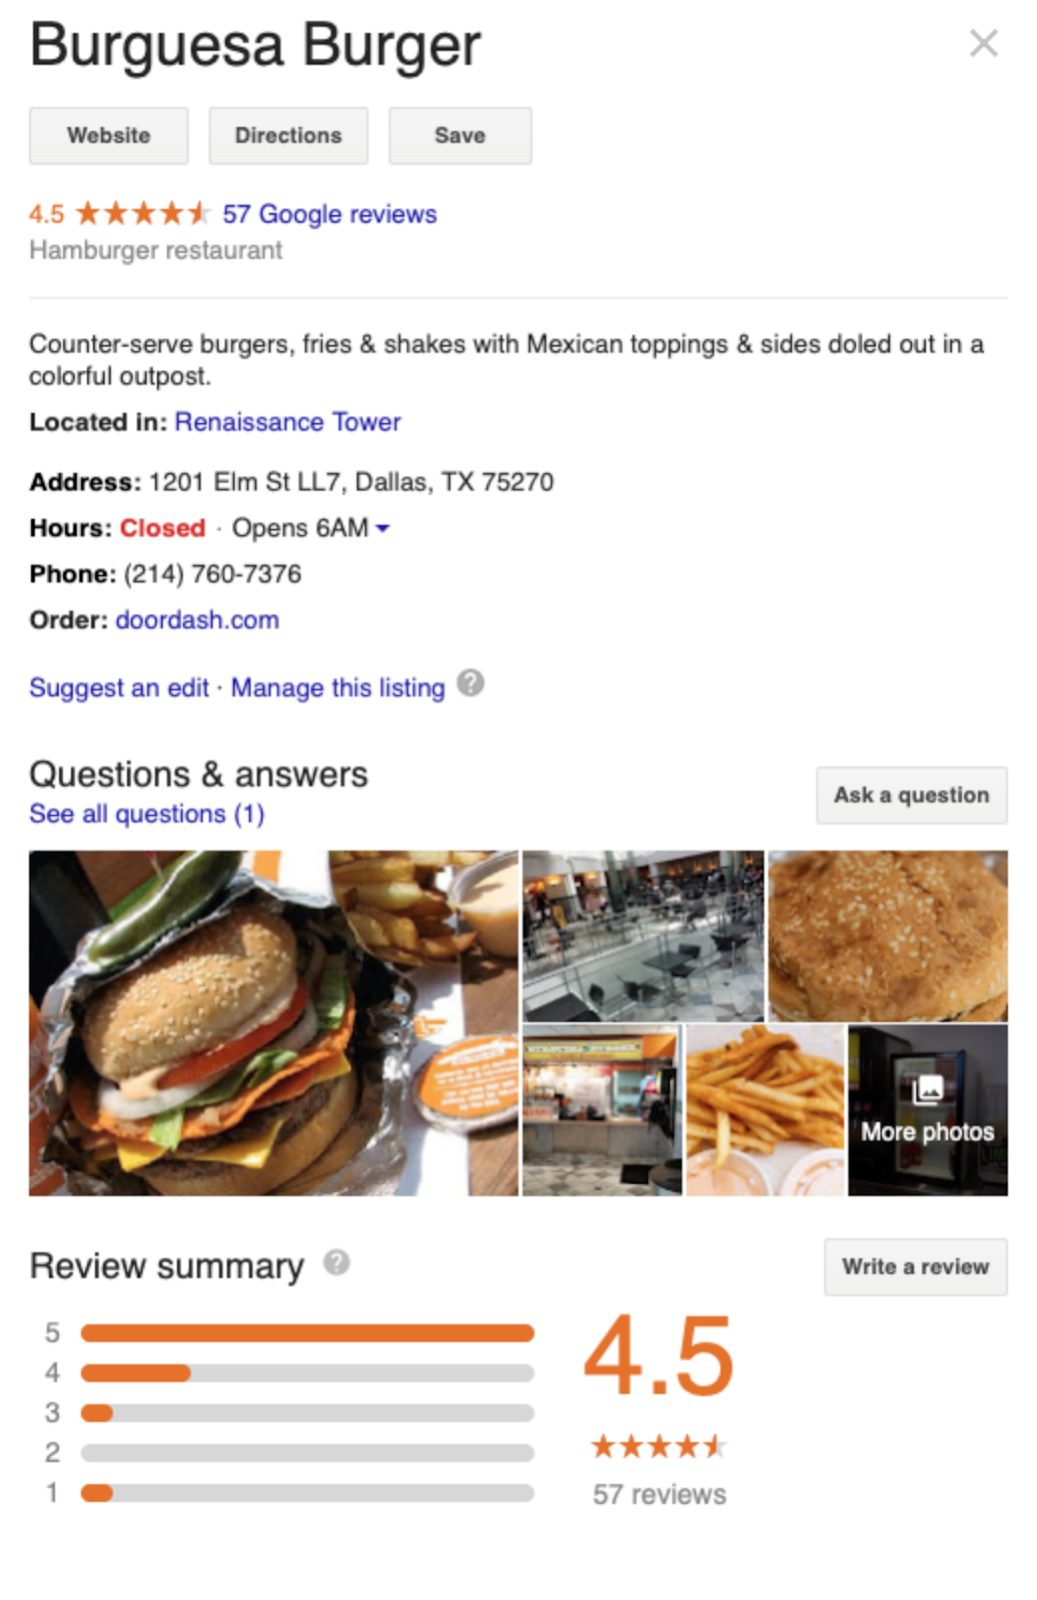 burger joints near downtown dallas Google Search 2019 08 21 02 14 44